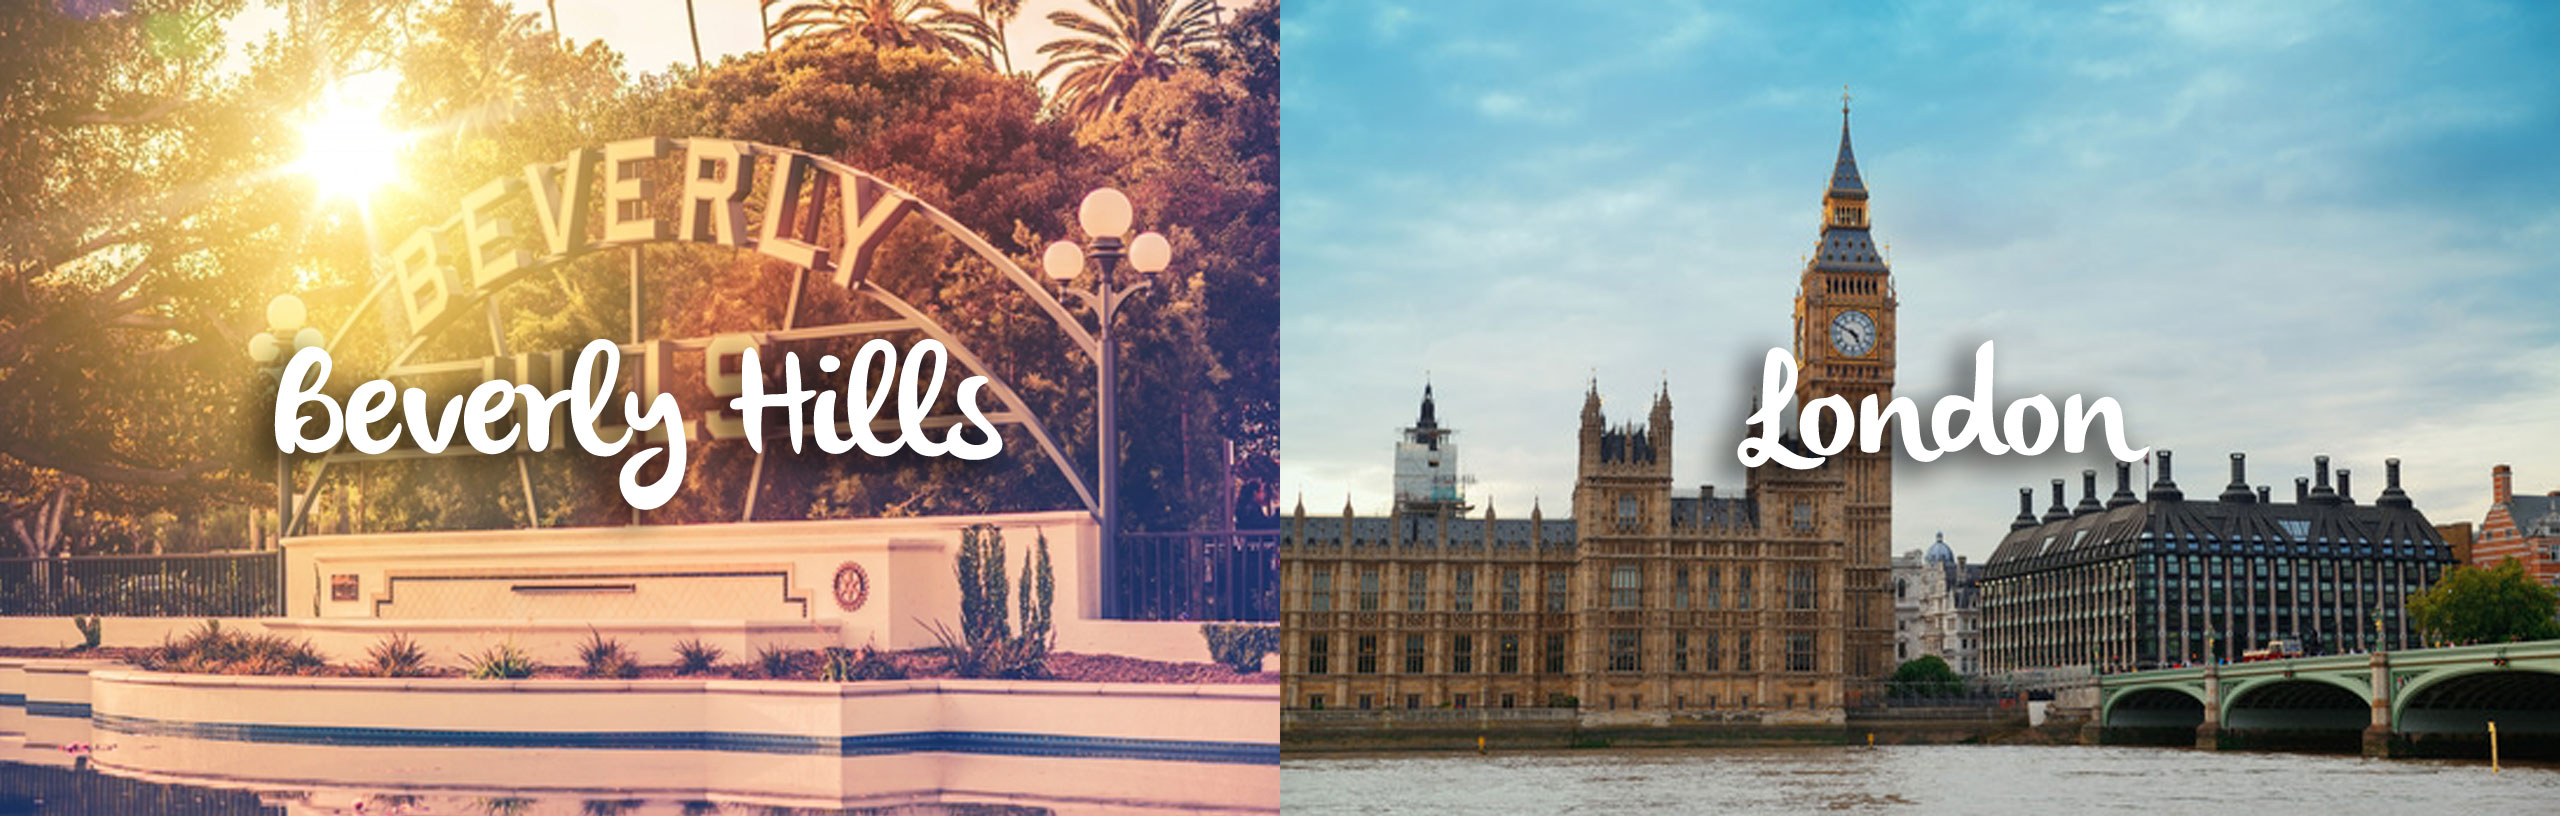 beverly hills and london